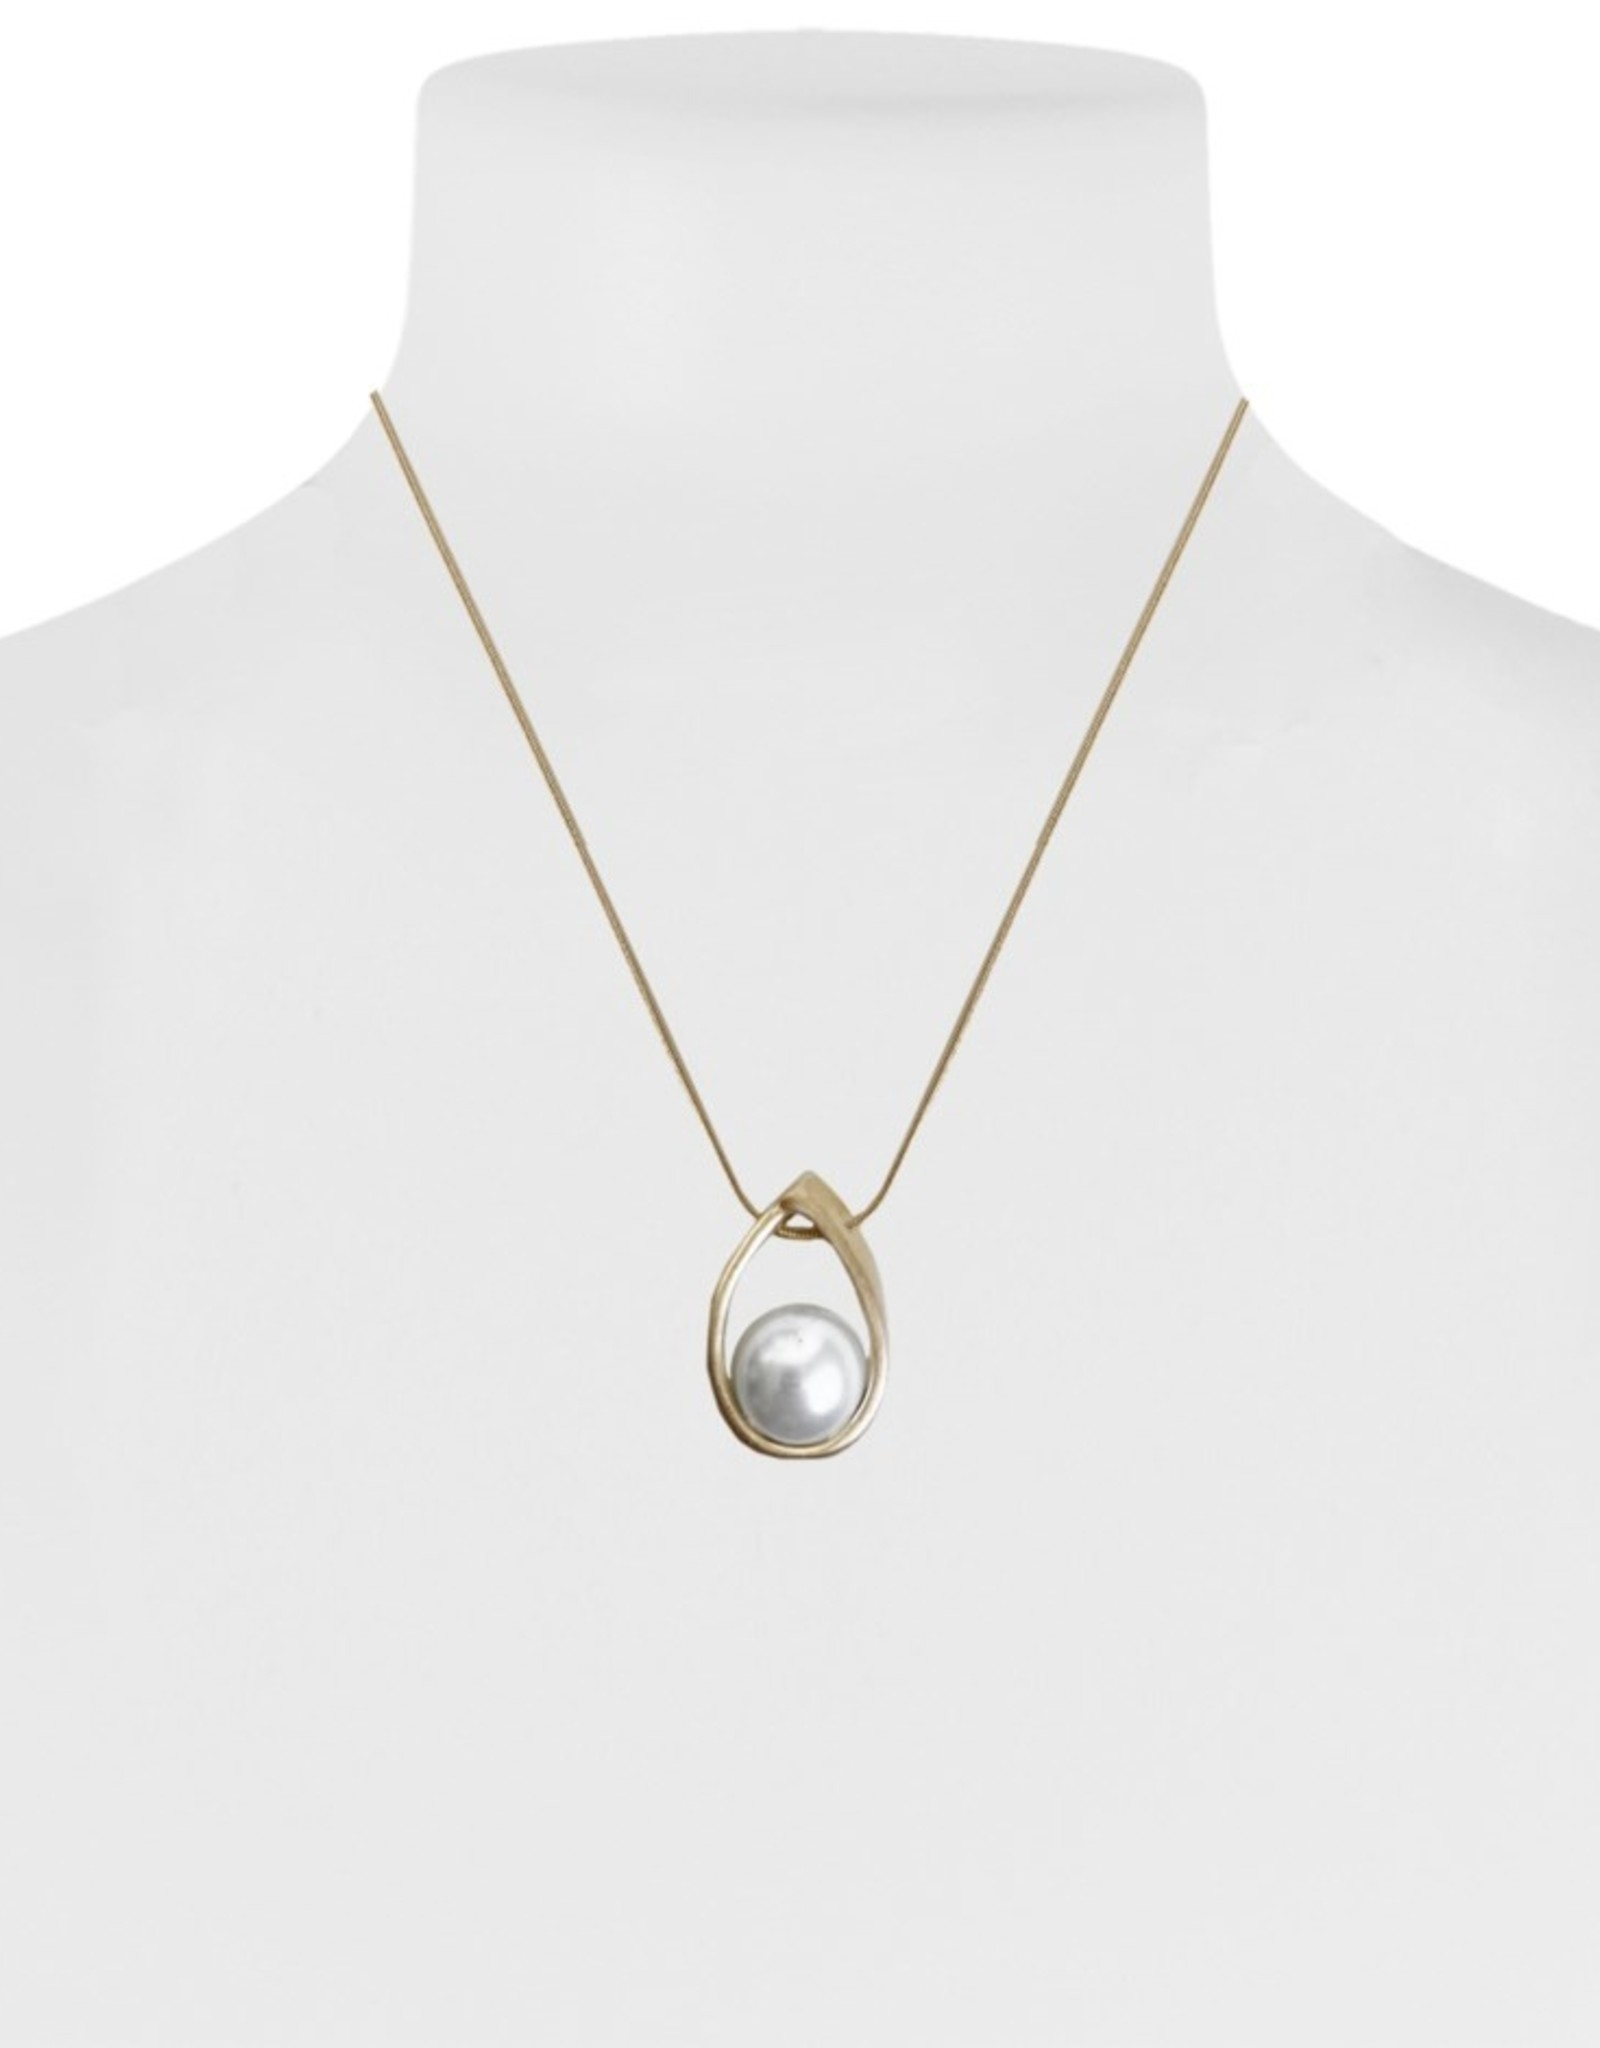 Brushed Metallic Pendant & Pearl Necklace-gold